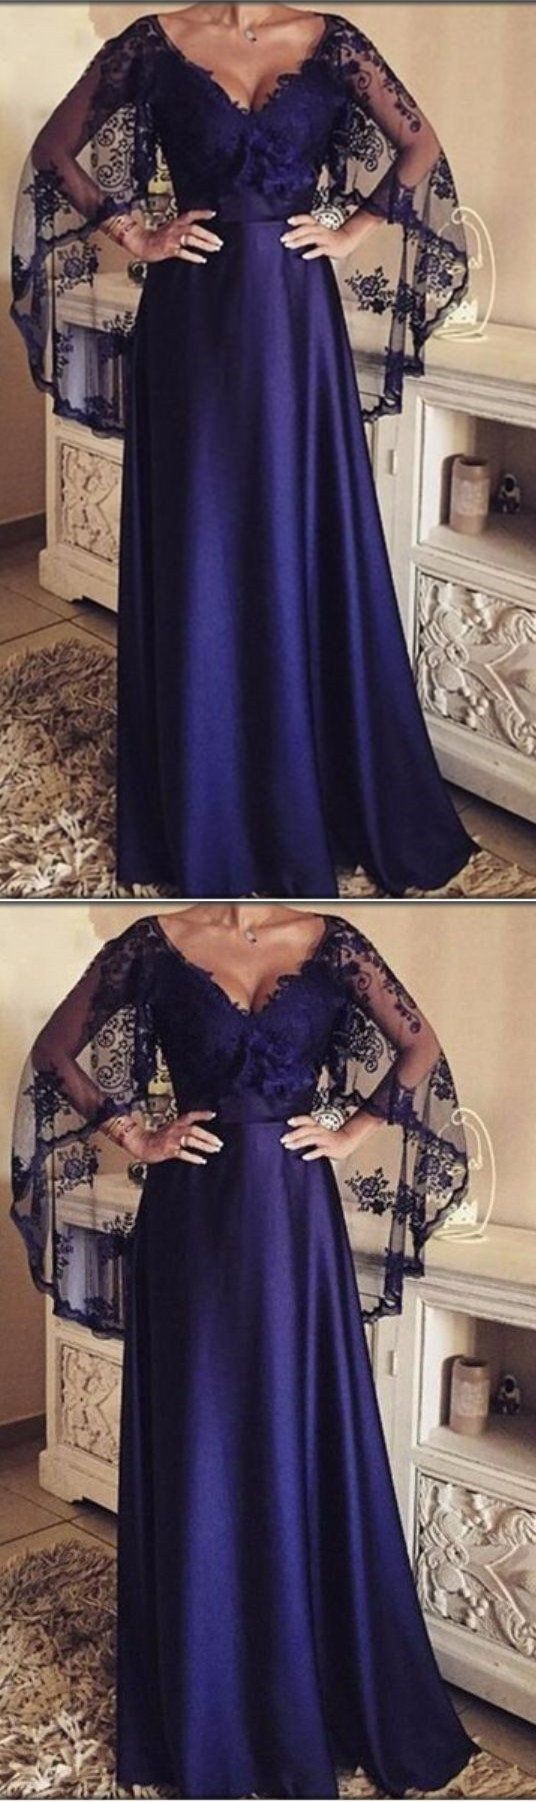 Prom Dresses Beautiful, Sexy Elegant Evening Dress,V-neck Long Evening Dresses with Lace Shawl,Formal Party Gowns,High Quality Graduation Dresses